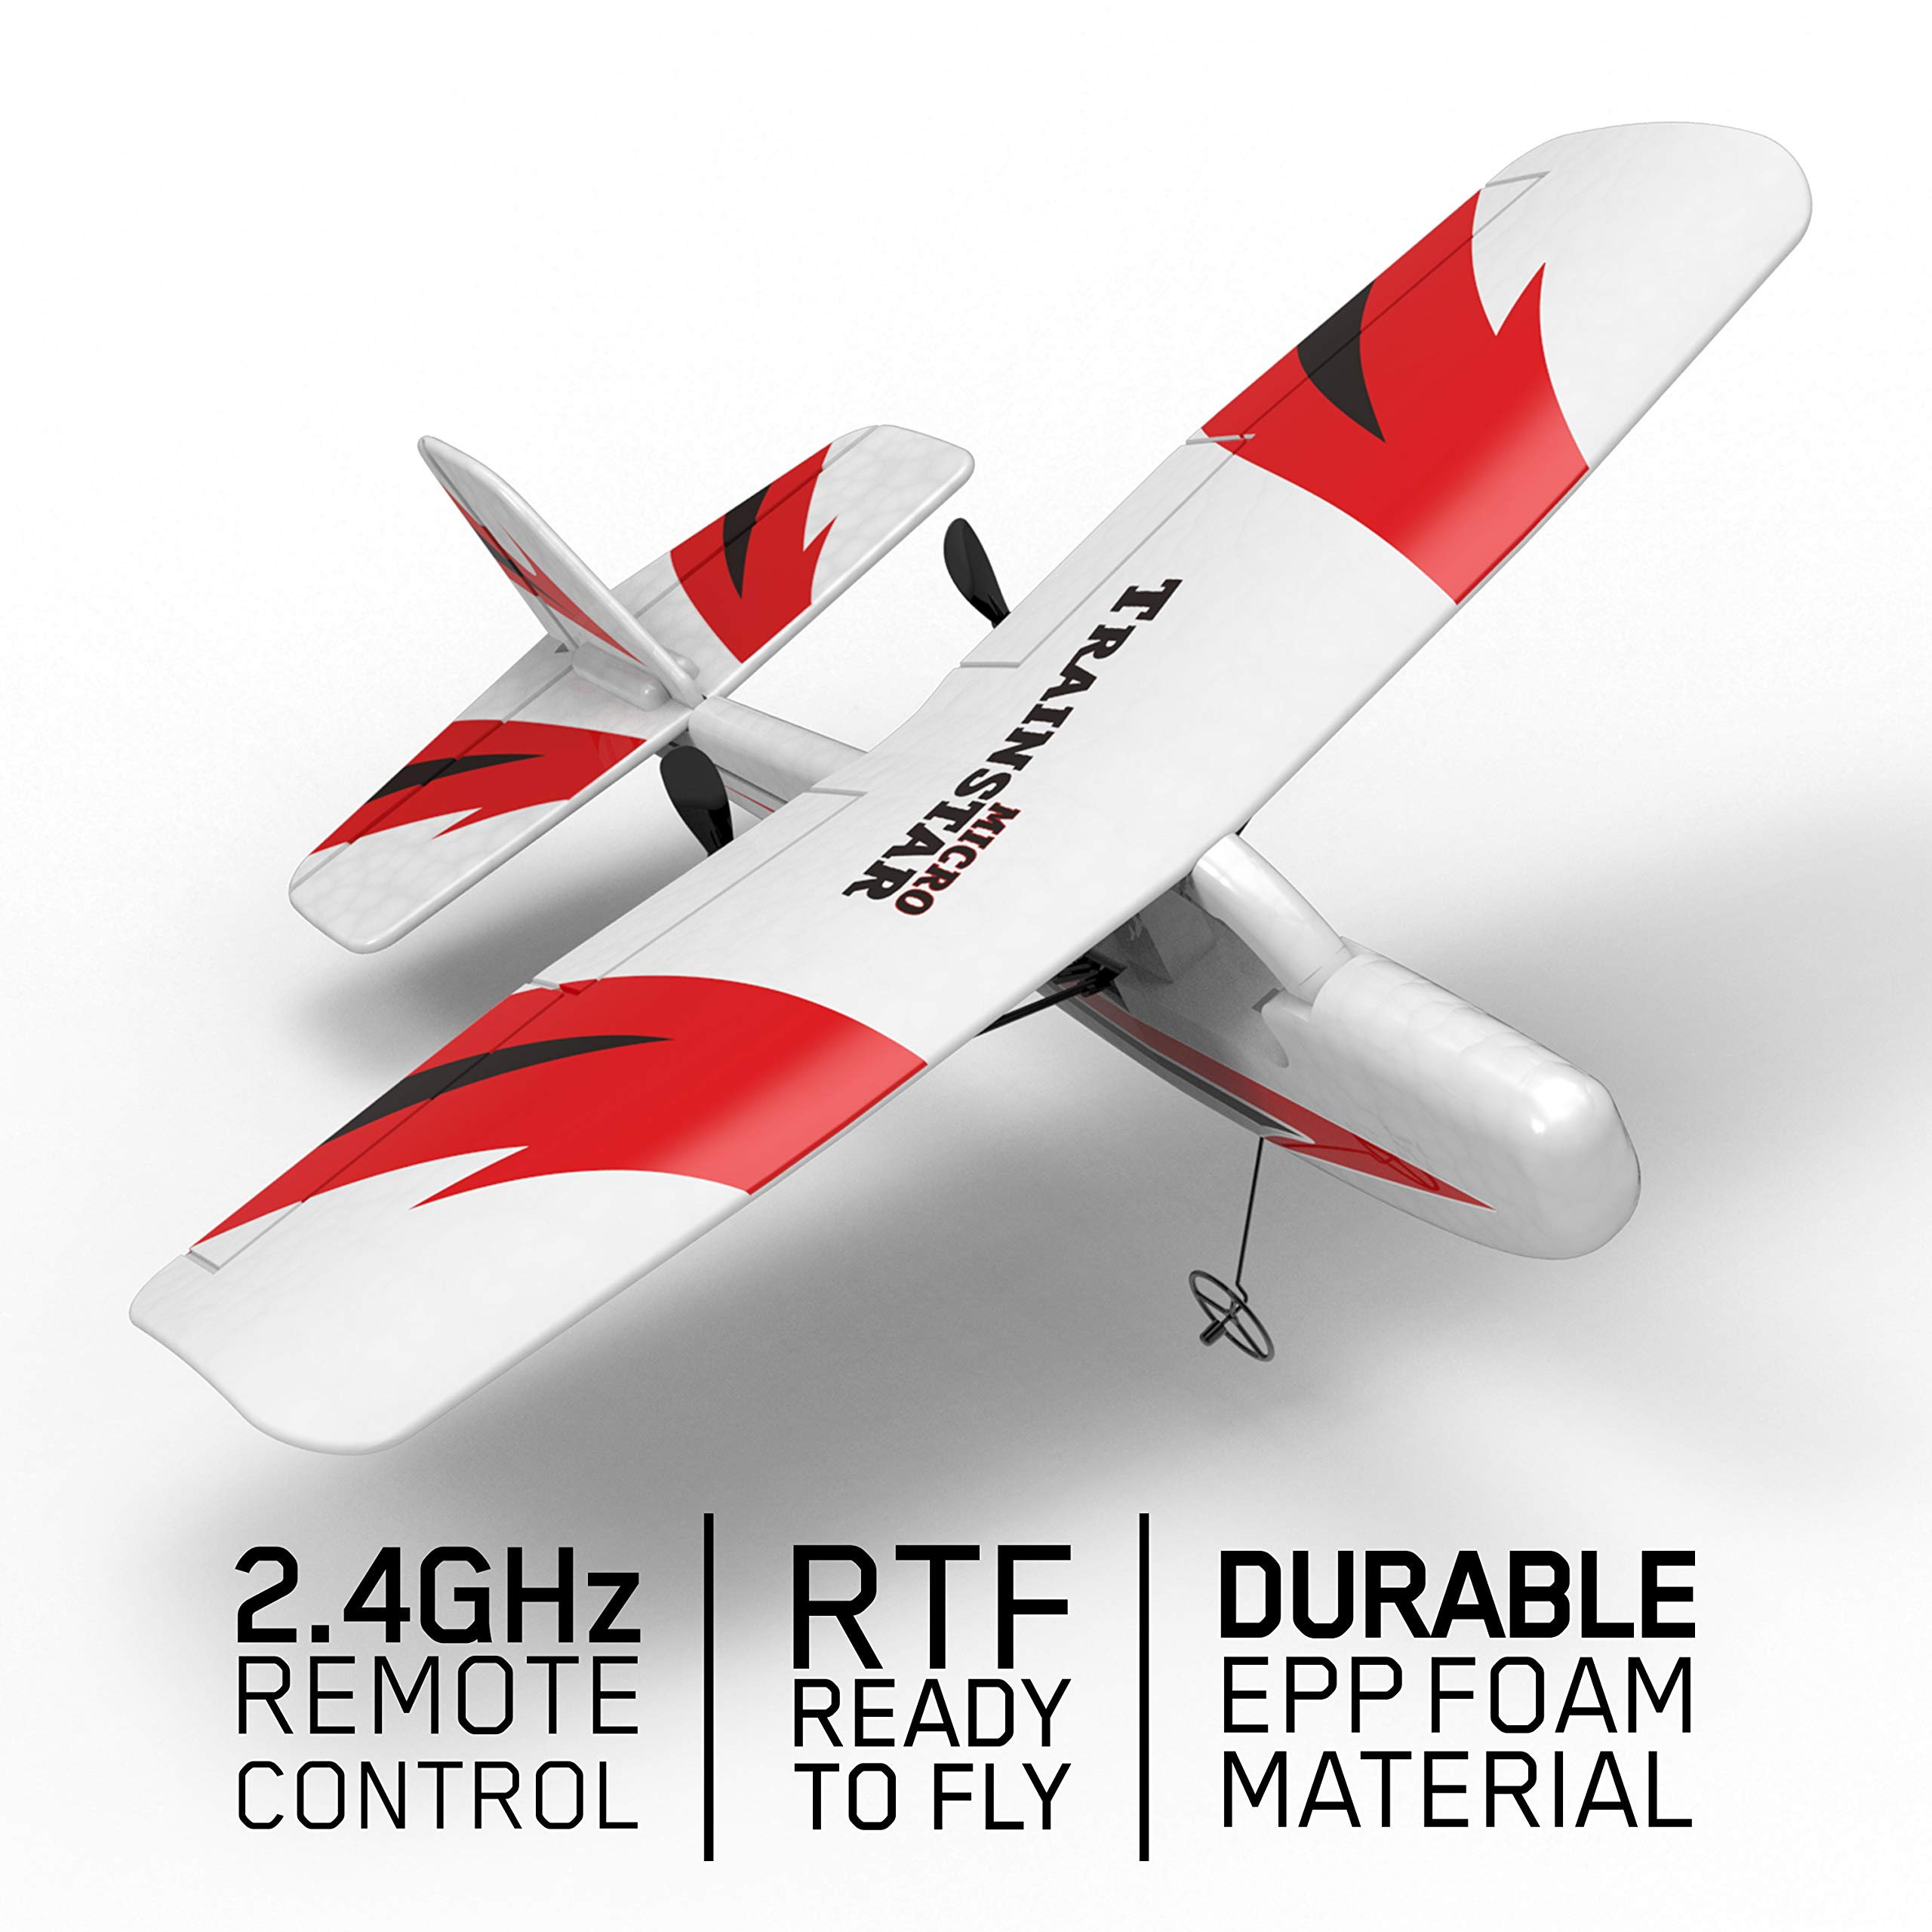 VOLANTEXRC Remote Control Airplane Traninstar Micro 2.4GHz RC Aircraft RTF Ready to Fly Indoor Outdoor Good for Kids Adluts (781-2)